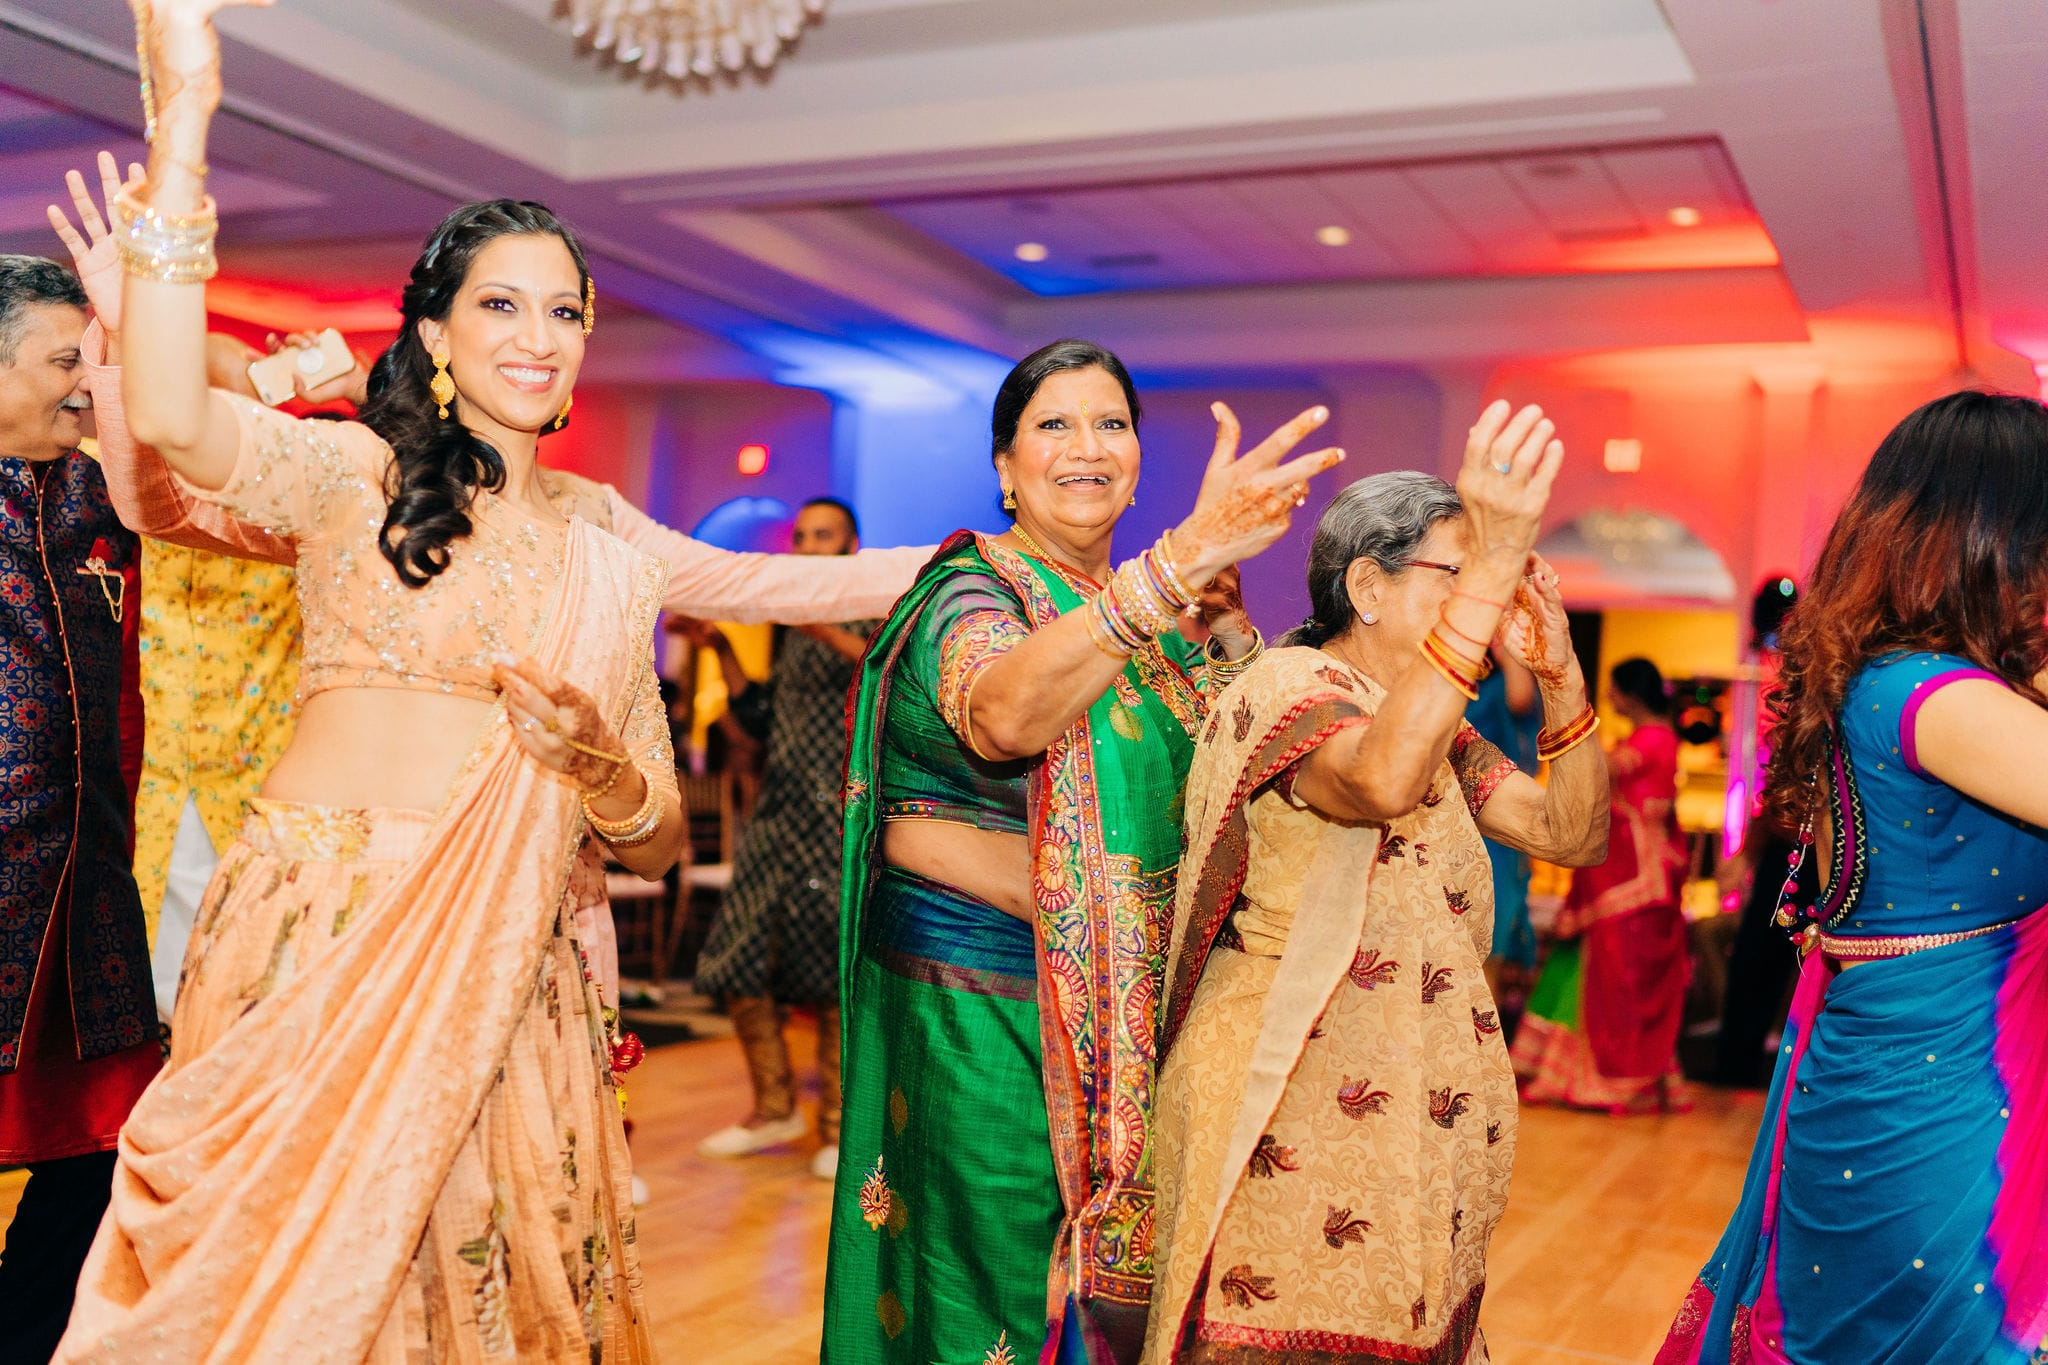 indian-wedding-los-angeles-photographer-079.jpg